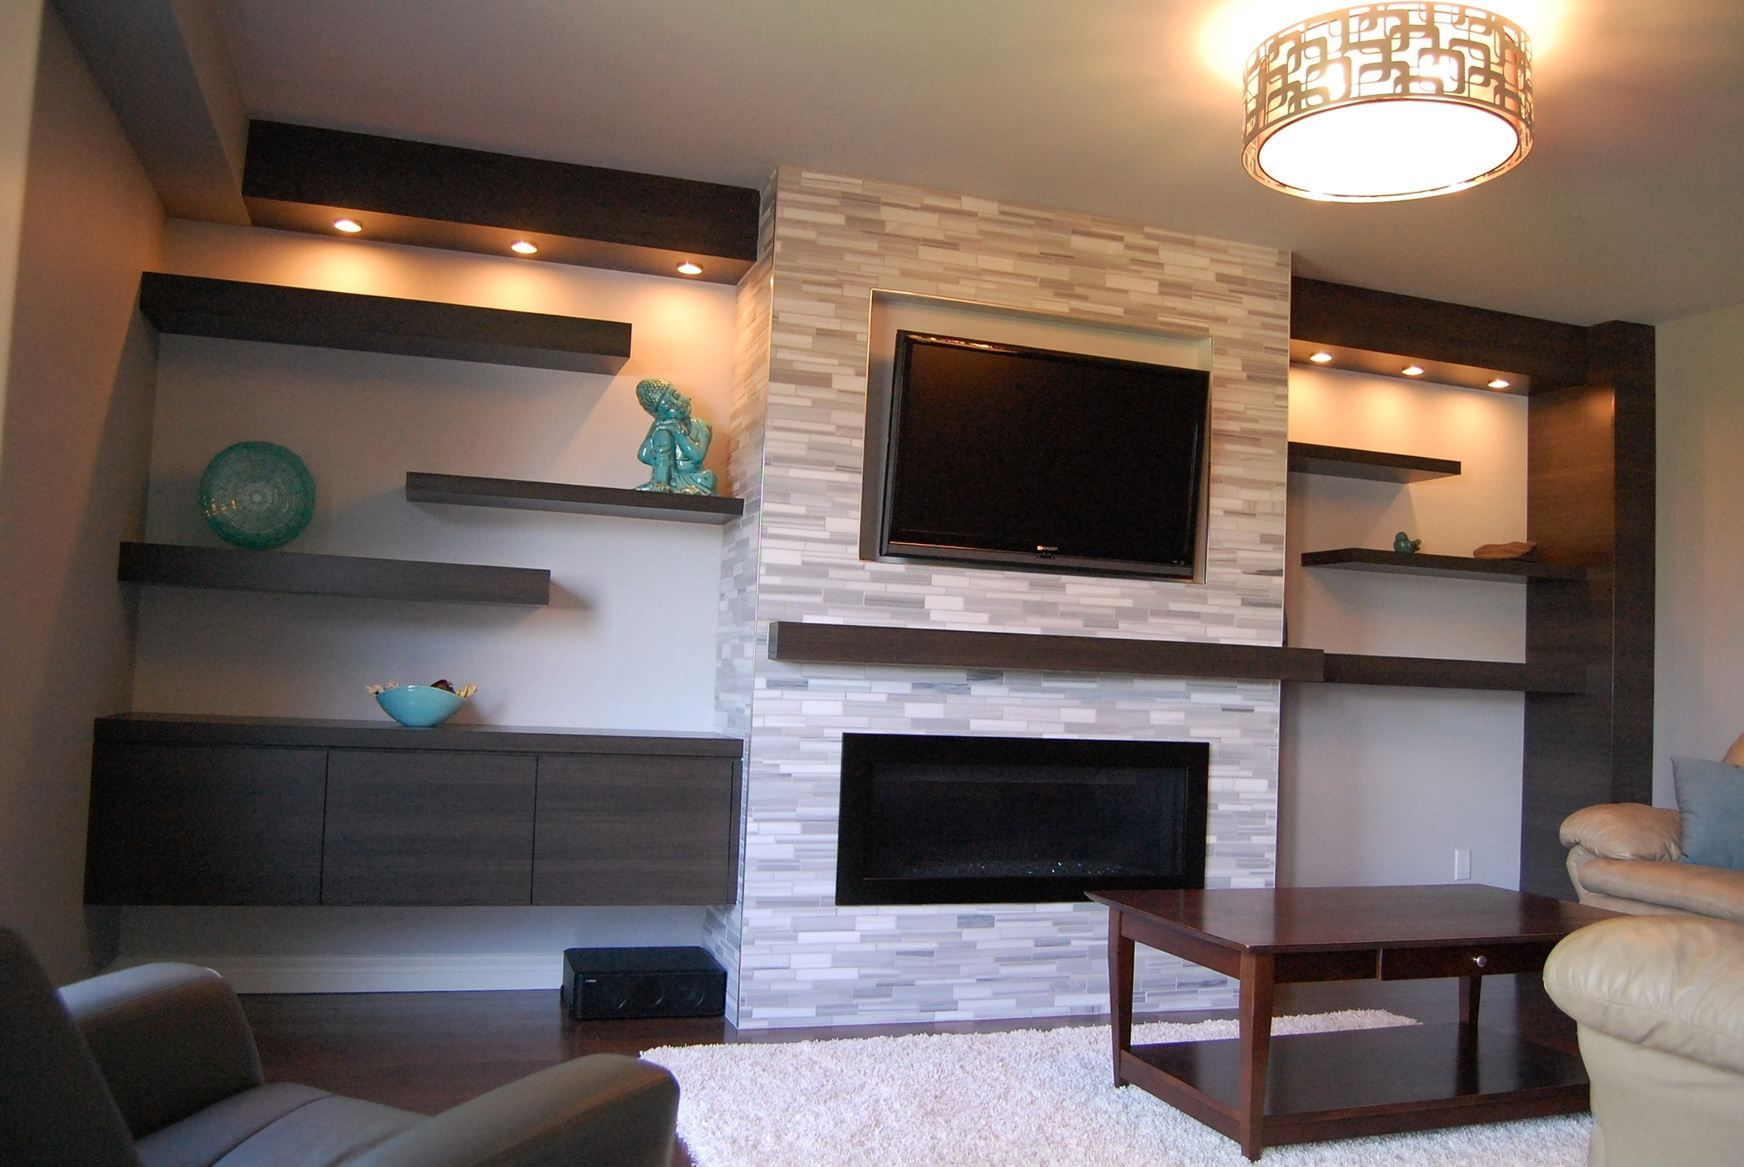 which the product everything blog pena residential wall about need tiled tile kristen brick cotton ordering image for fireplace to full fireclay int your is know you best